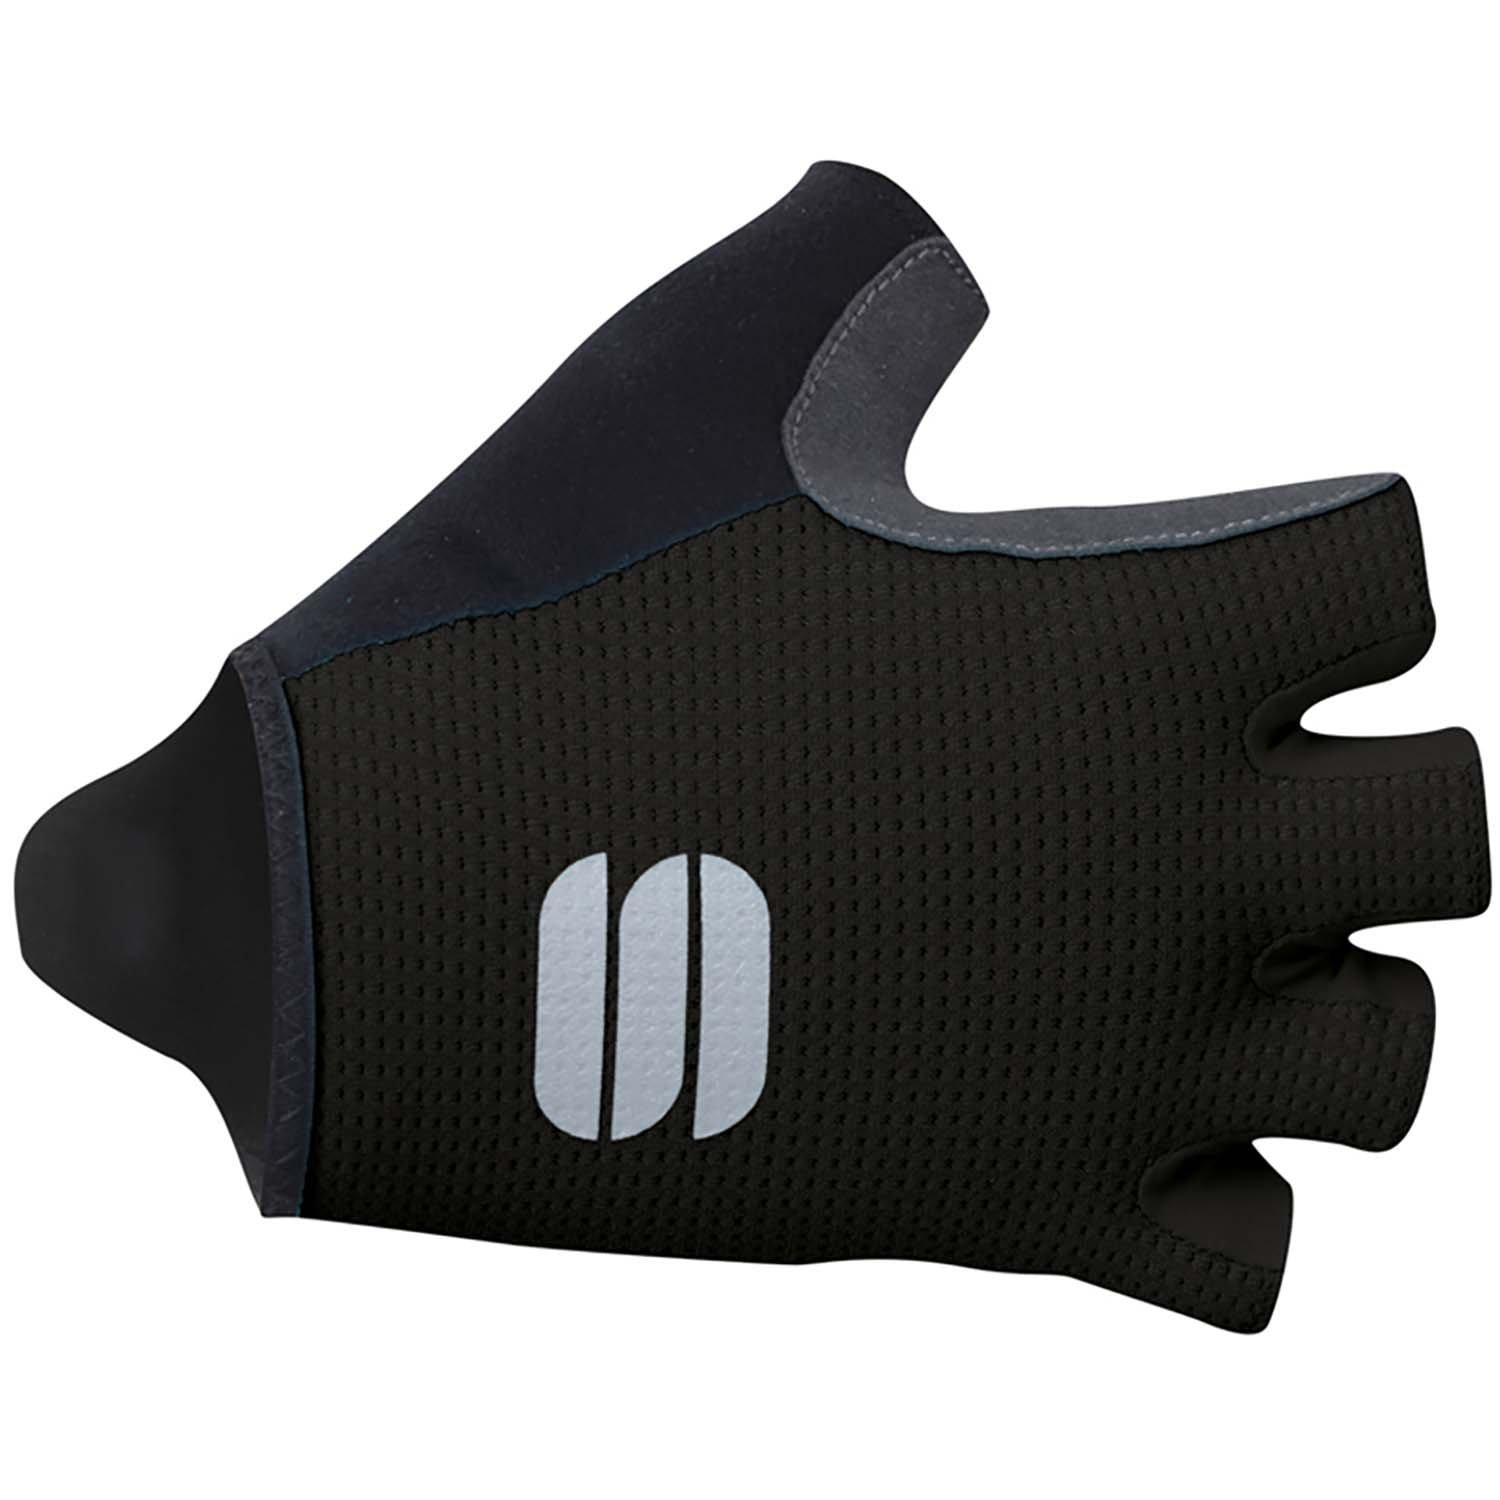 Sportful-Sportful TC Women's Gloves-Black-XS-SF200660021-saddleback-elite-performance-cycling